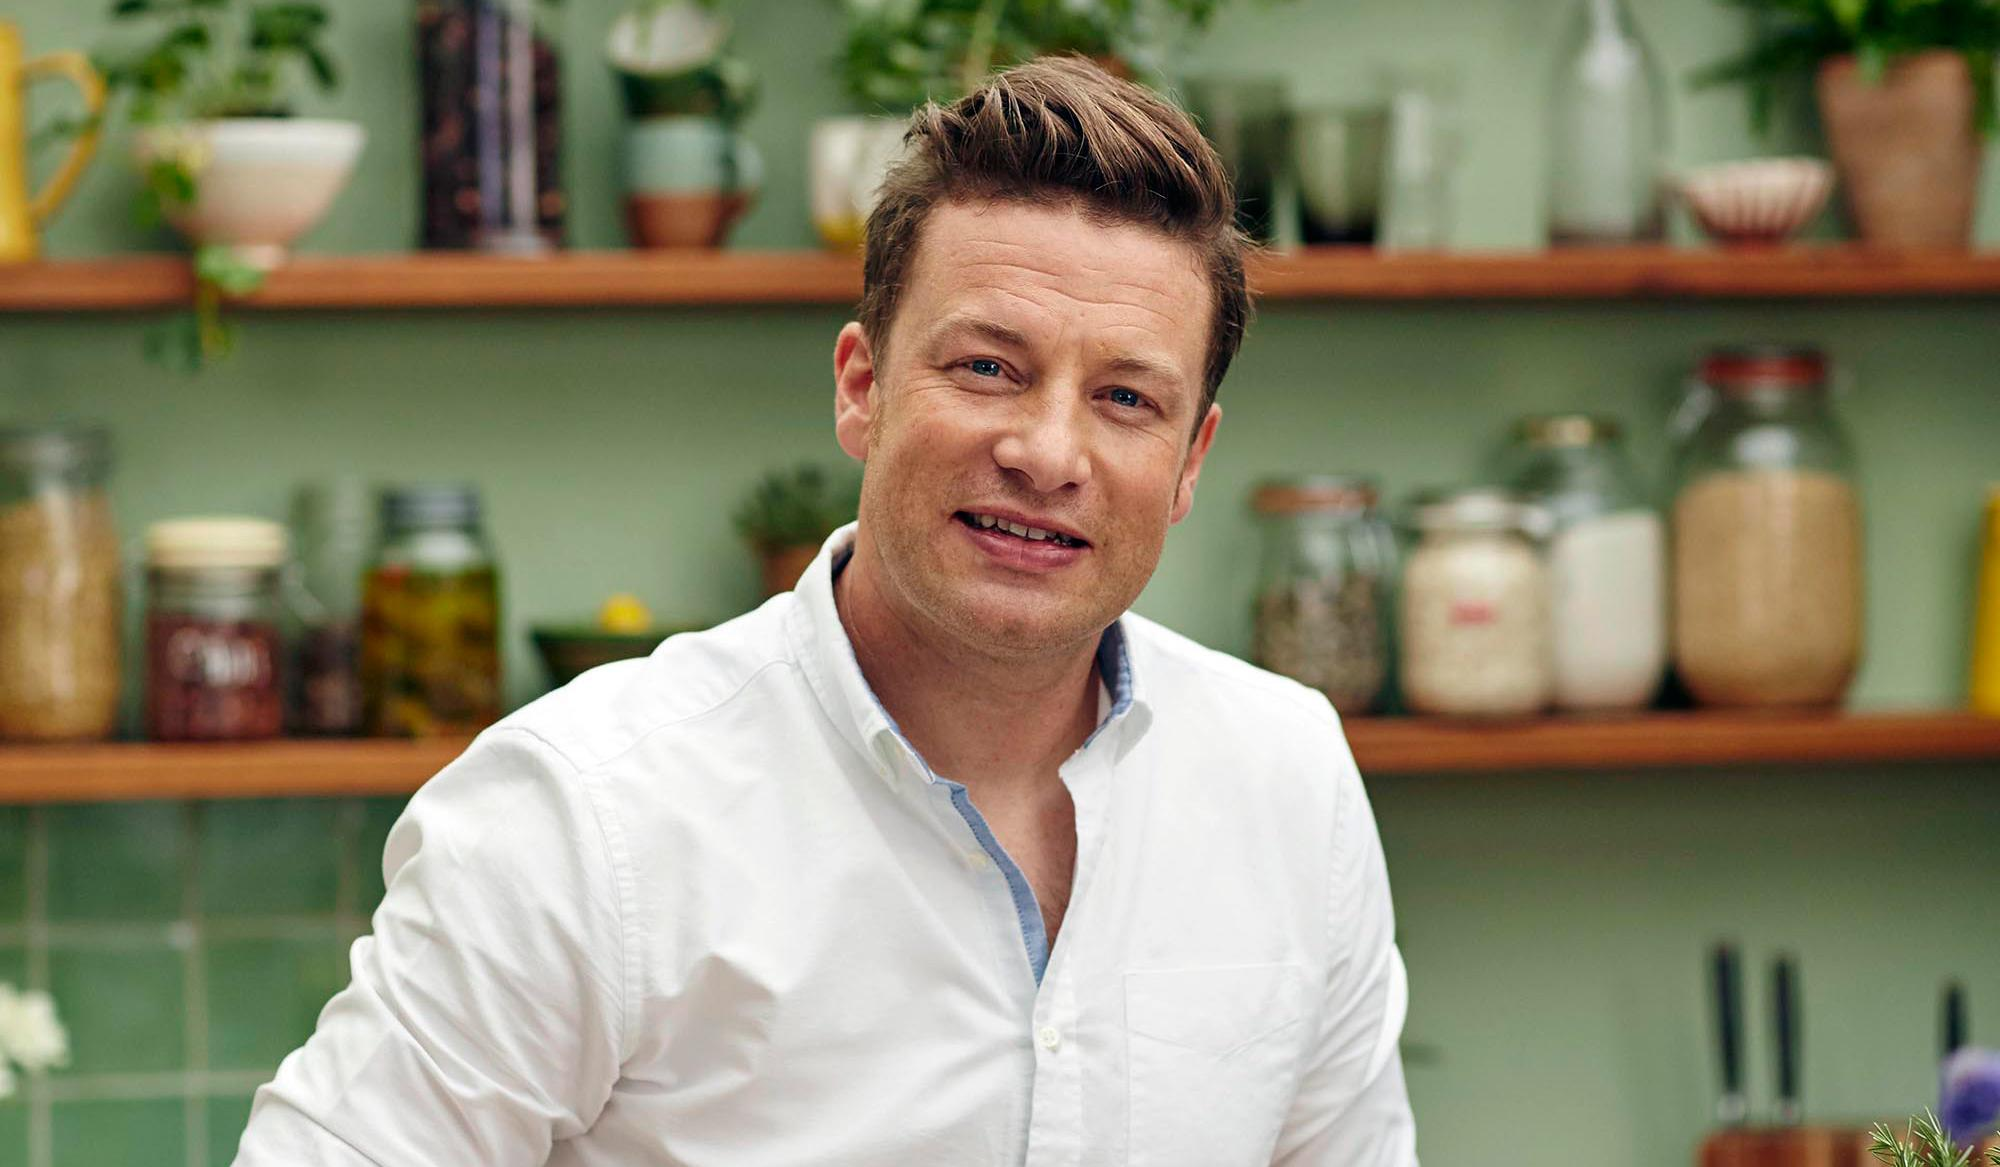 jamie oliver to shut six jamie 39 s italian restaurants amid